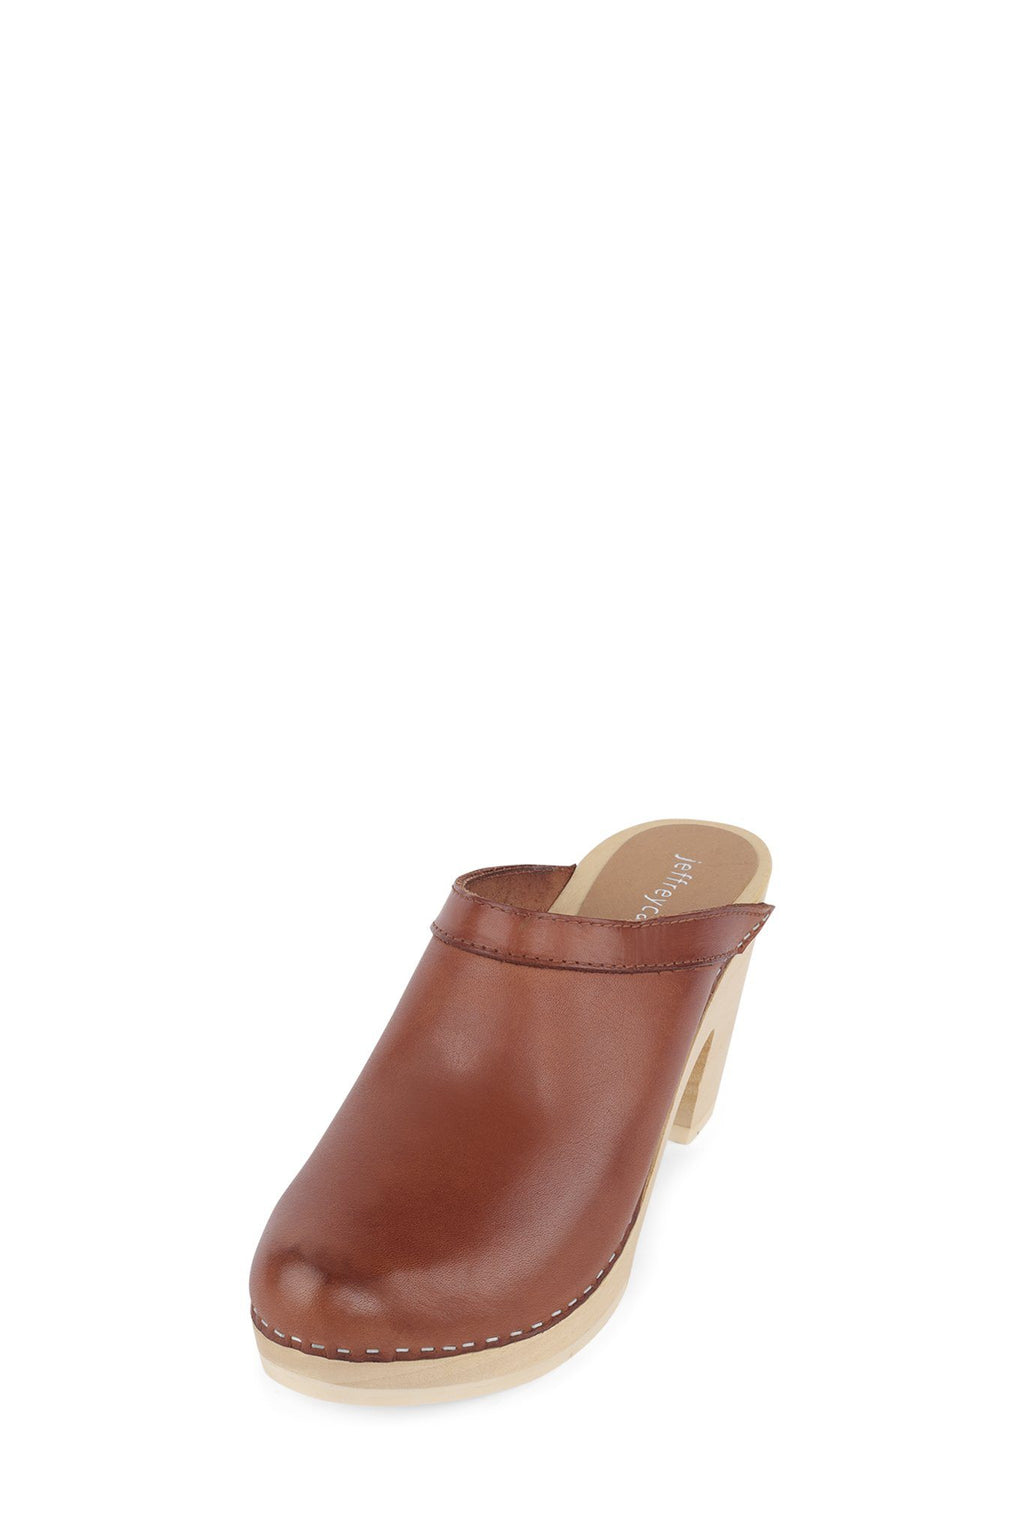 ALYSSE Heeled Mule Jeffrey Campbell